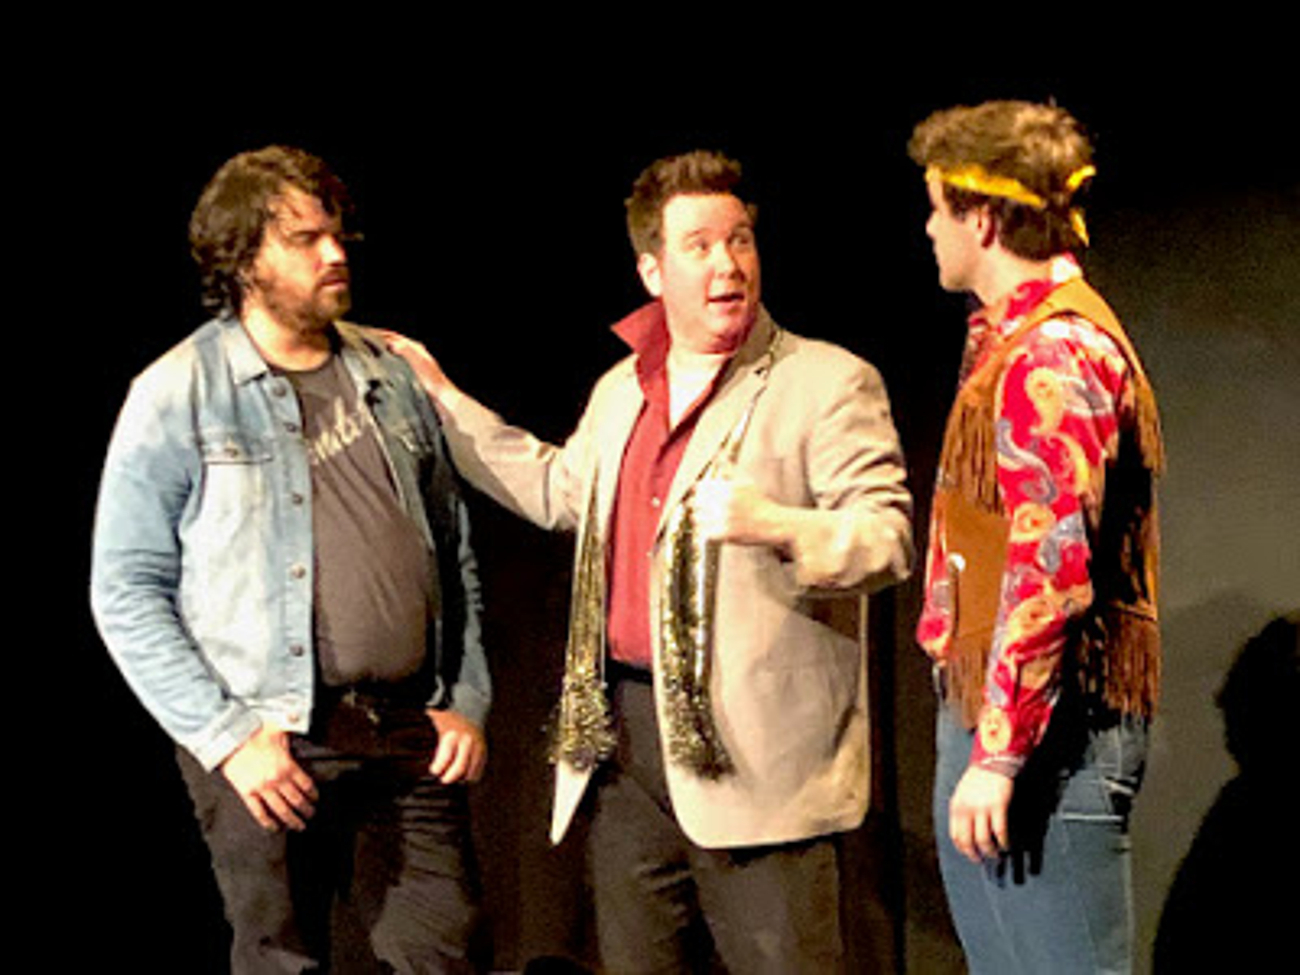 BWW Review: REWIND, An Original 80s Musical, Bops Into Hollywood For The Fringe Festival at Let Live Theatre